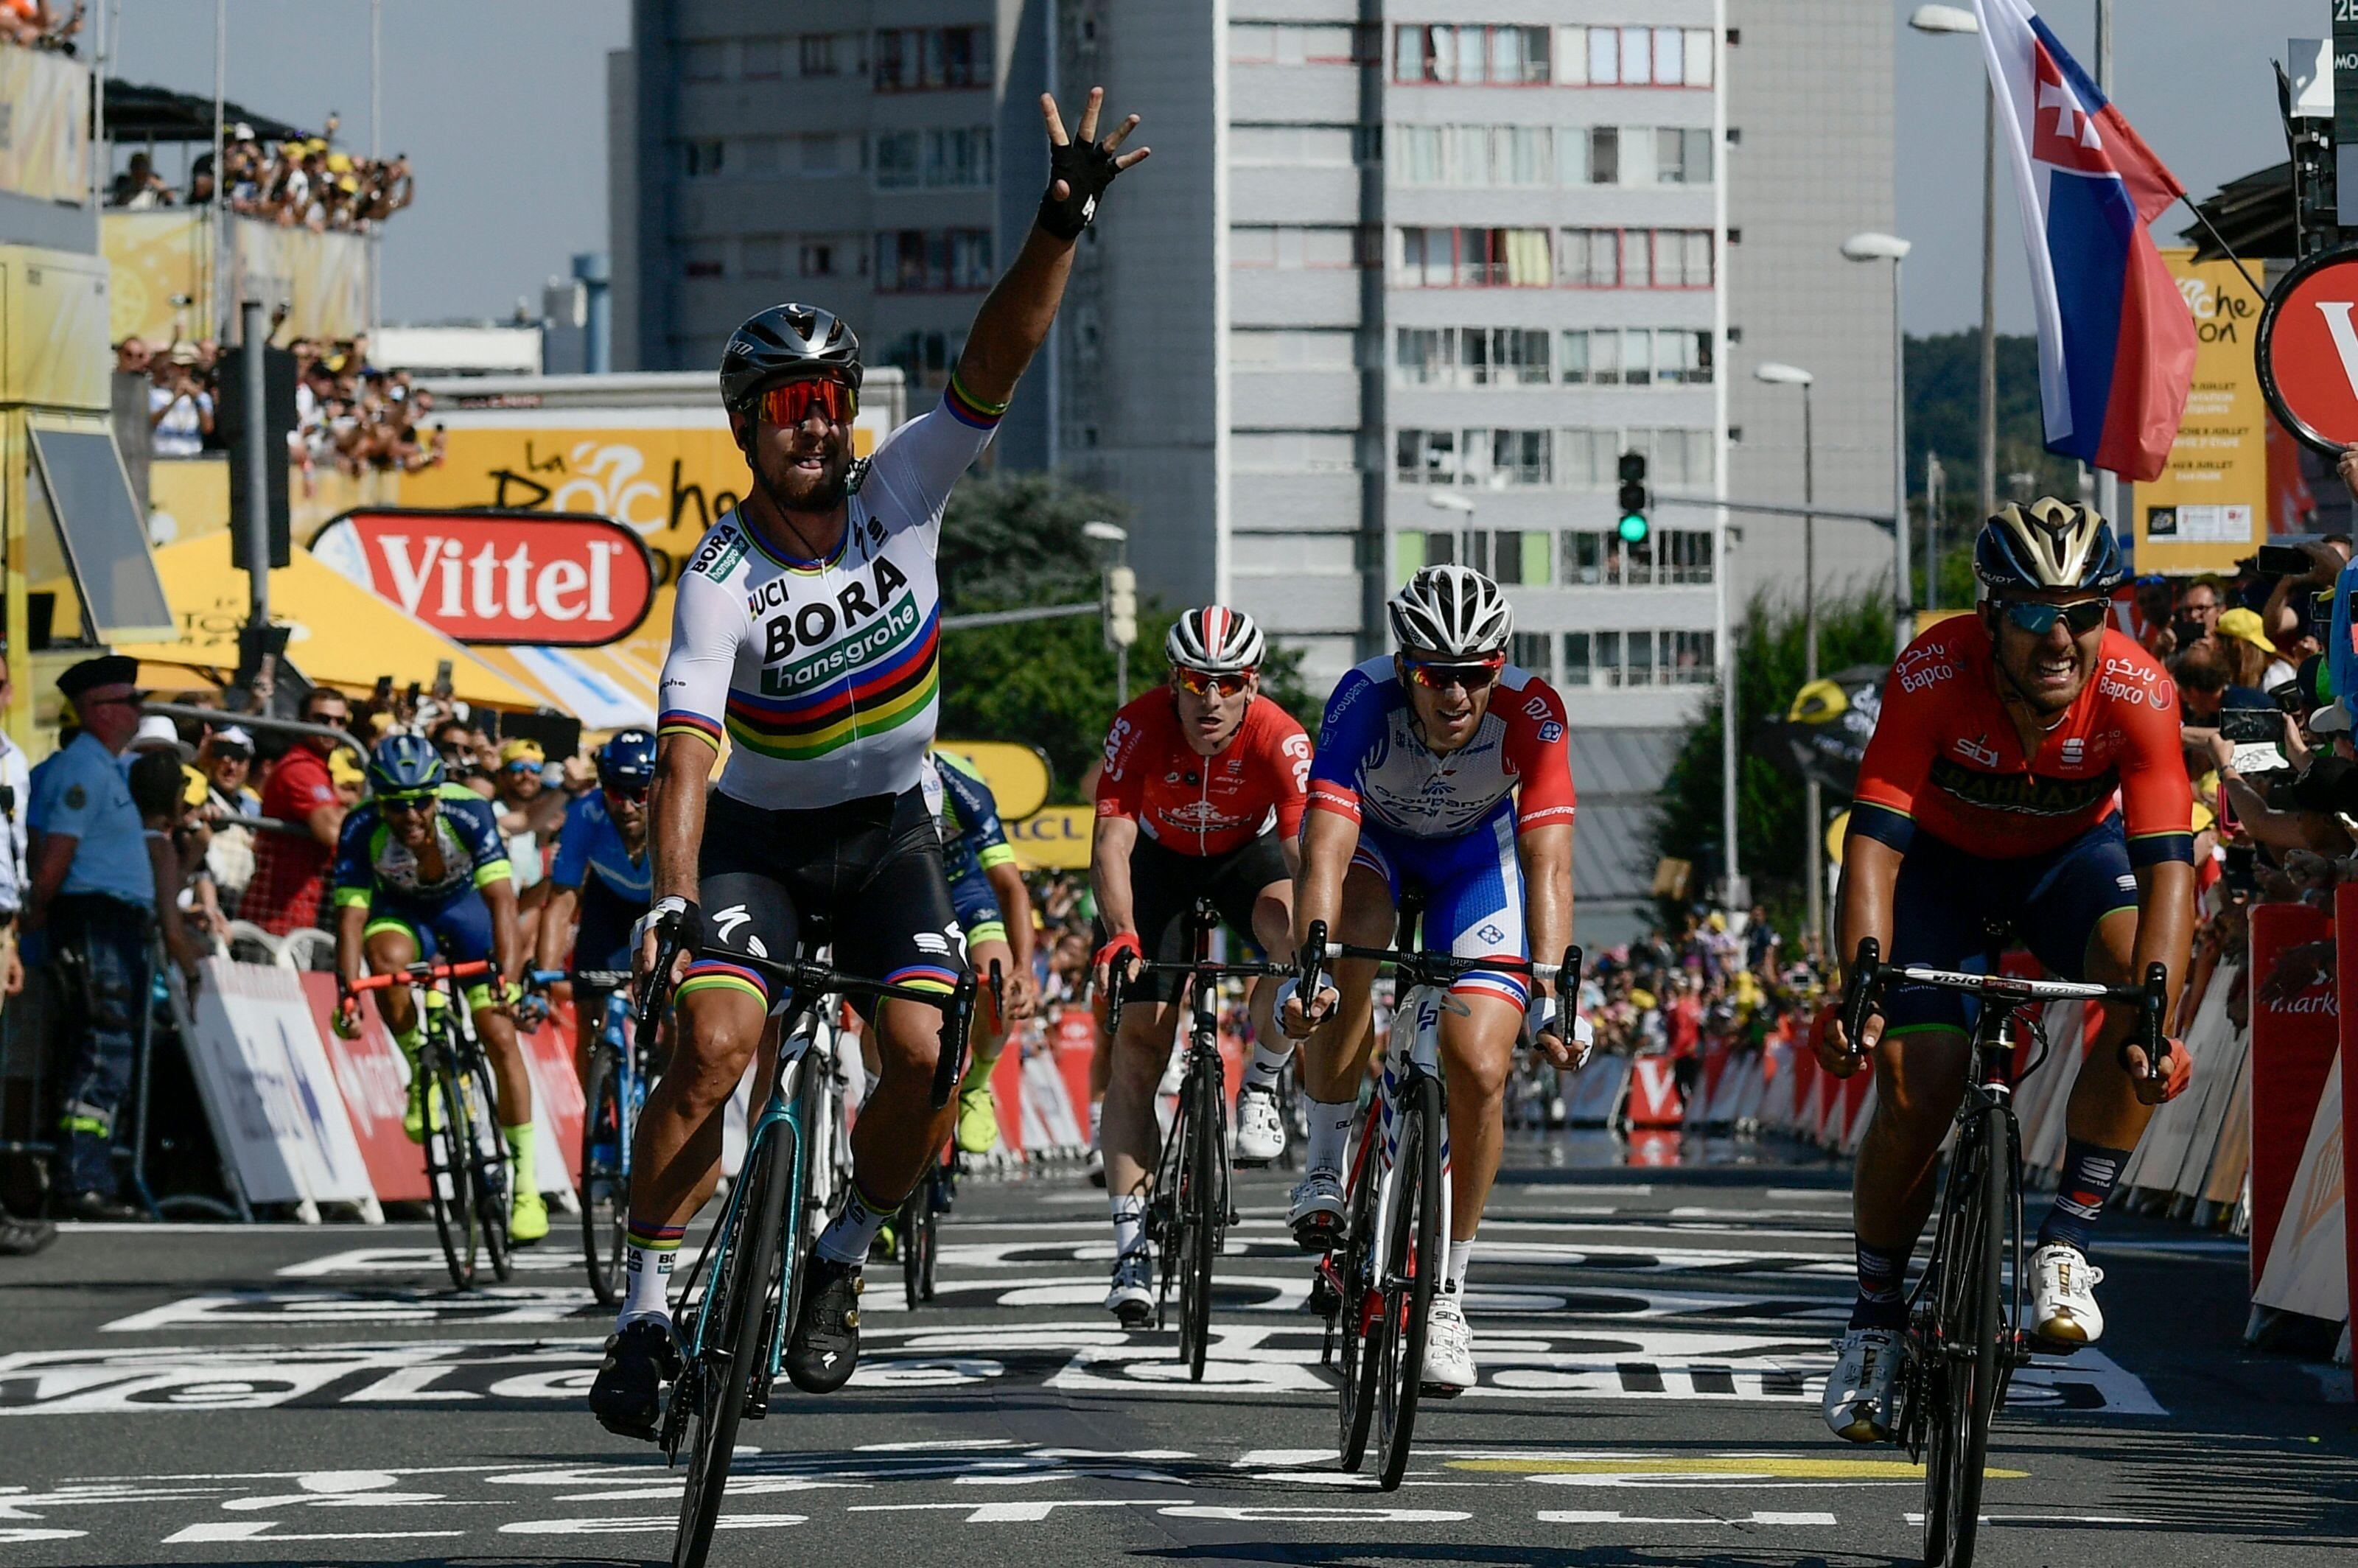 Peter Sagan celebrates winning the sprint to the line in stage two of the Tour de France